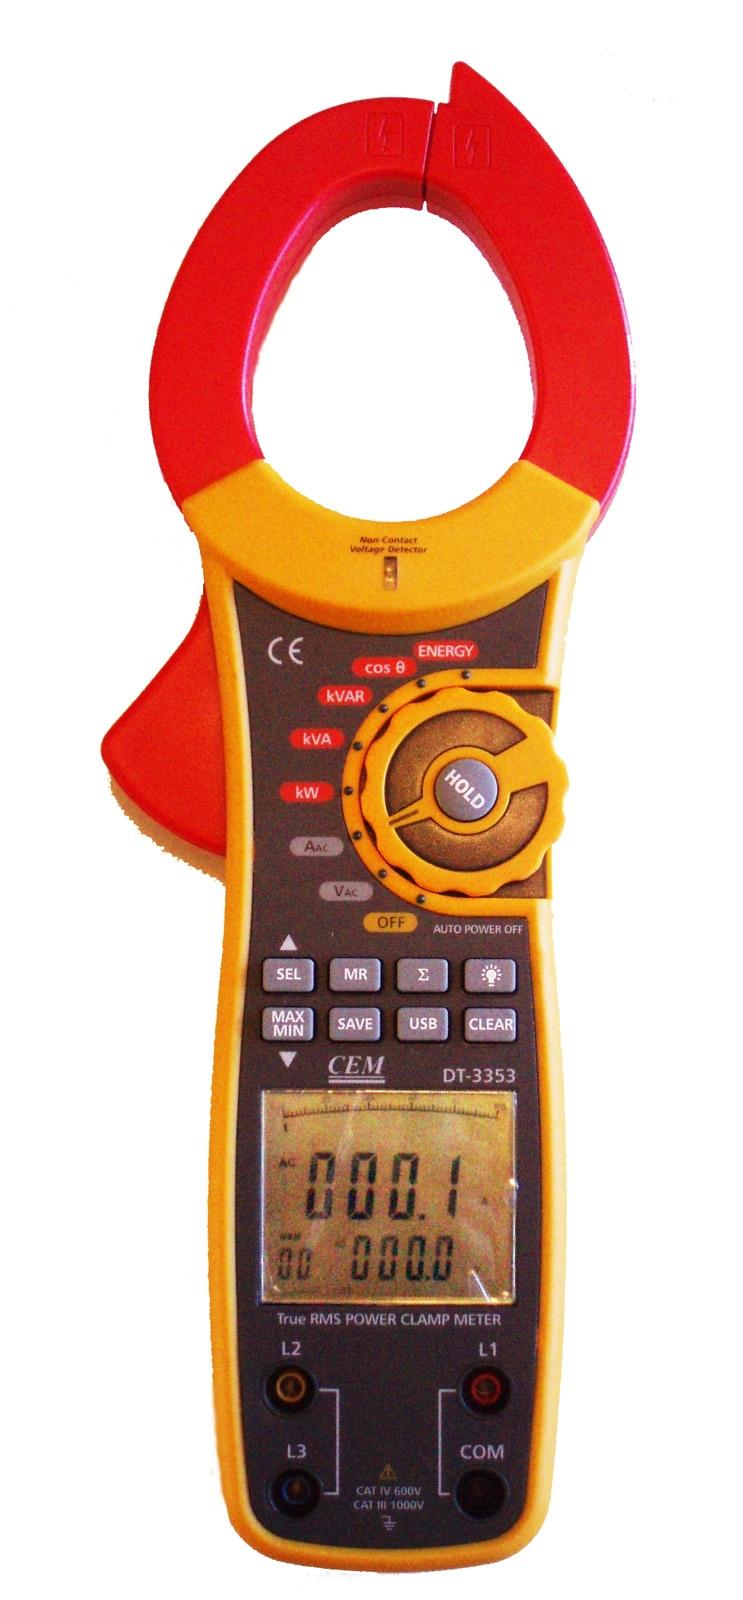 DT-3353 Digital 1000A AC 3-Phase Watt Volt Current True RMS Power Clamp Meter with USB Interface